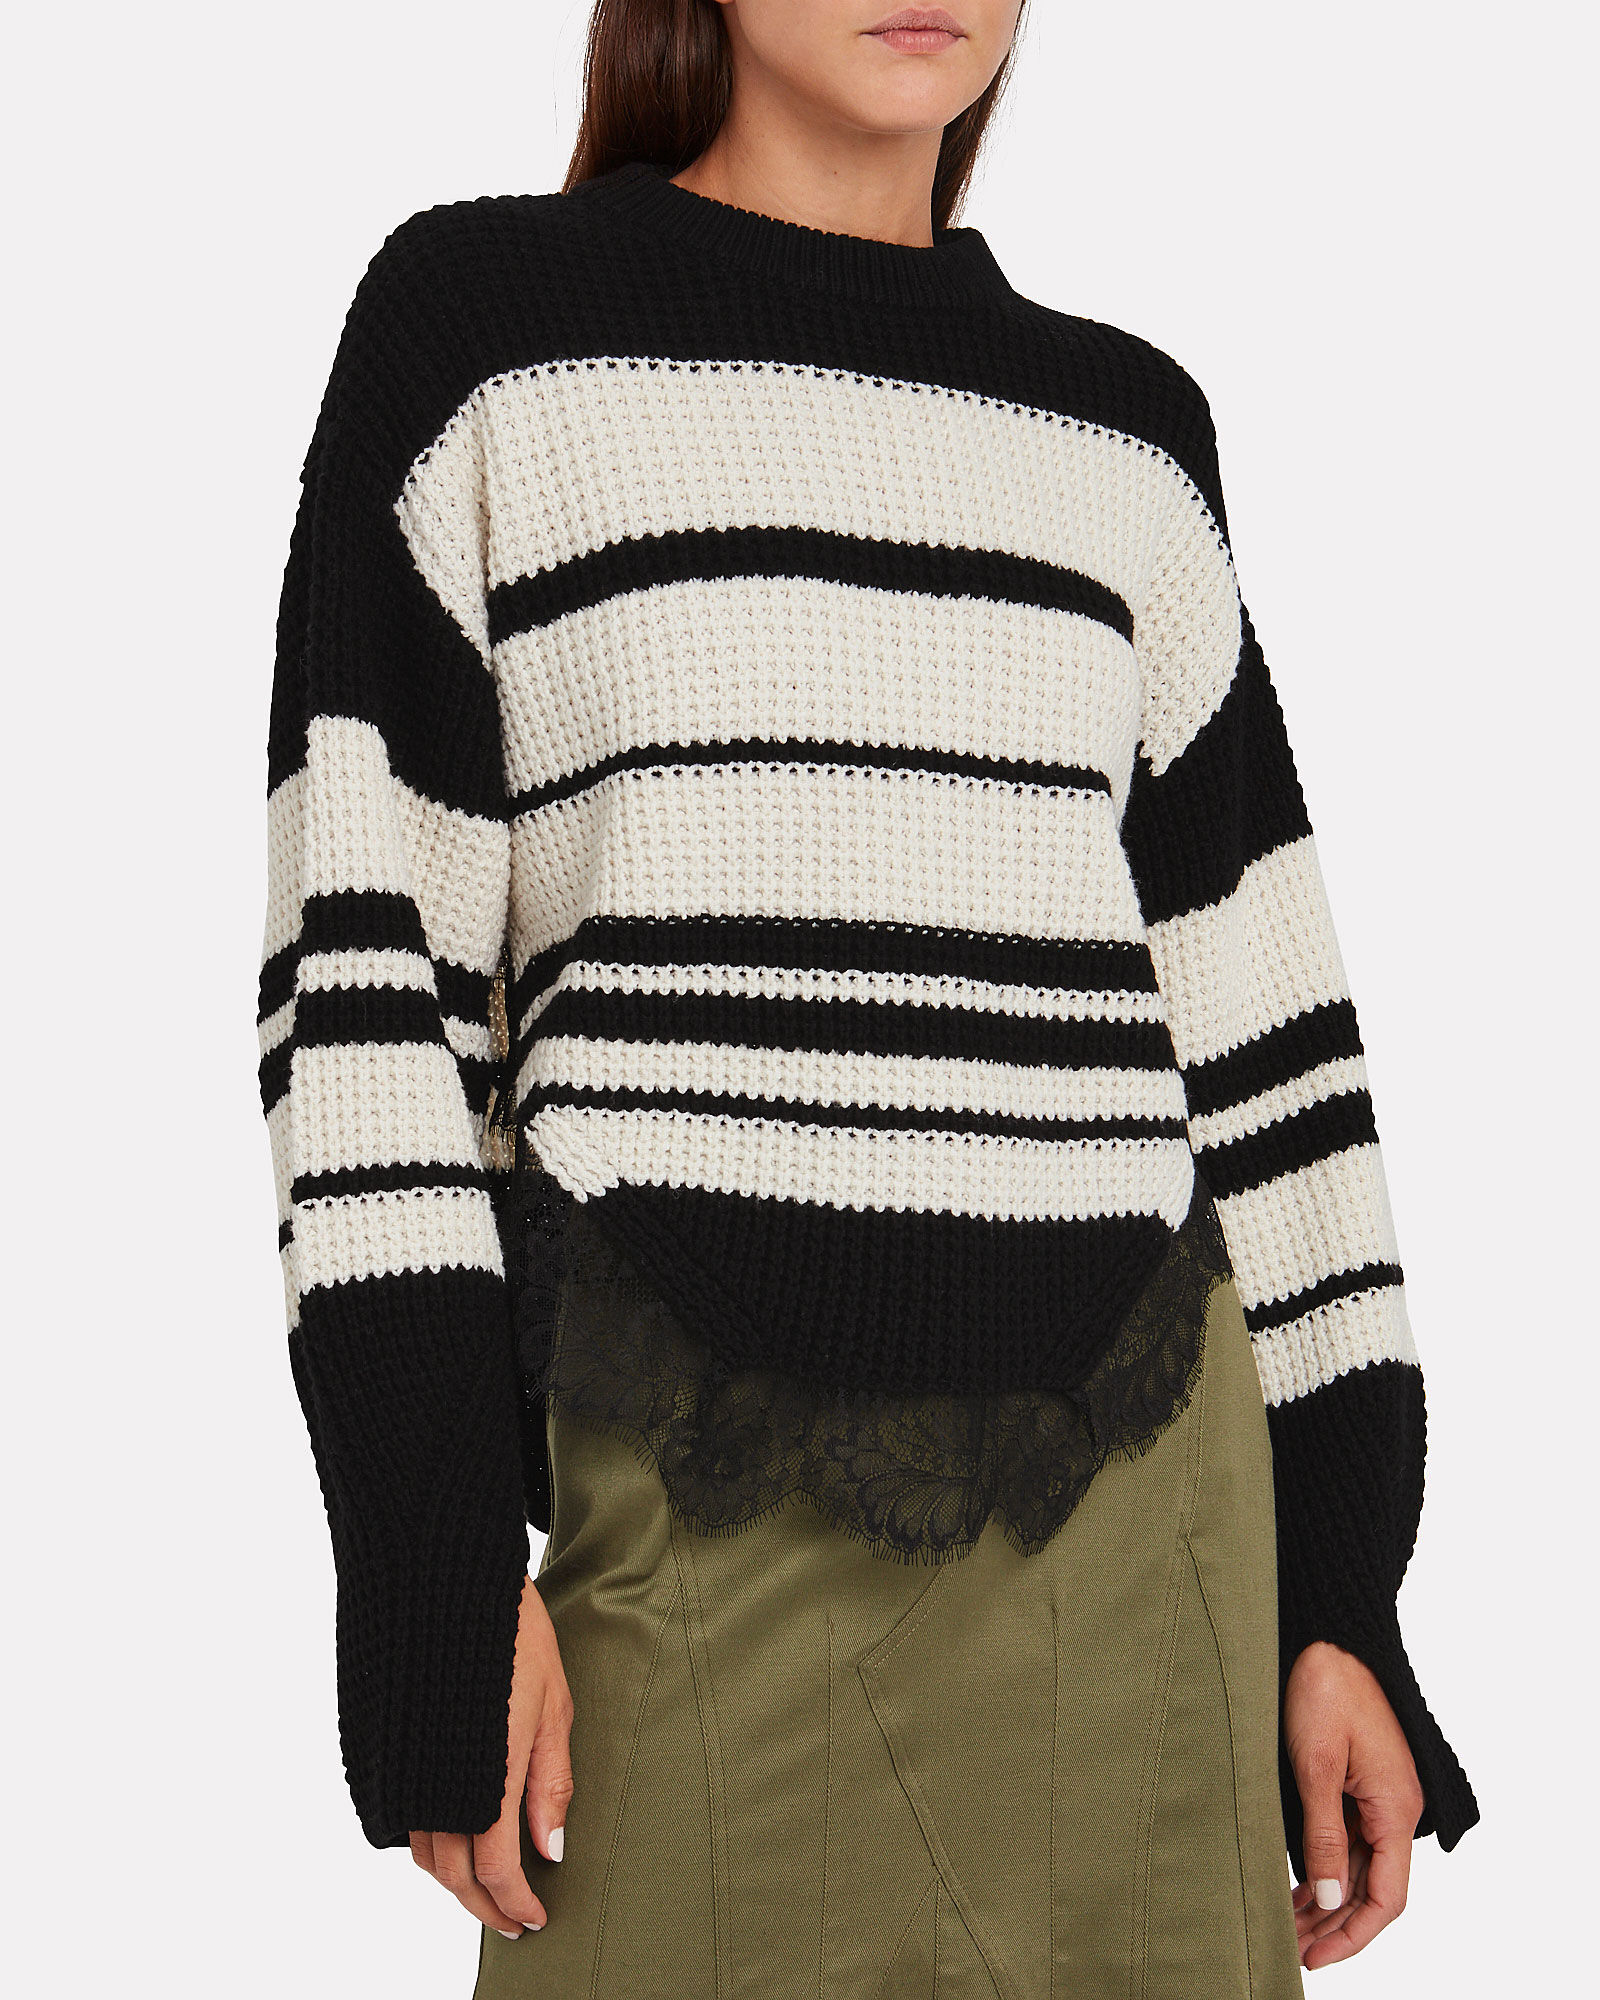 Striped Lace-Trimmed Sweater, BLACK/WHITE, hi-res